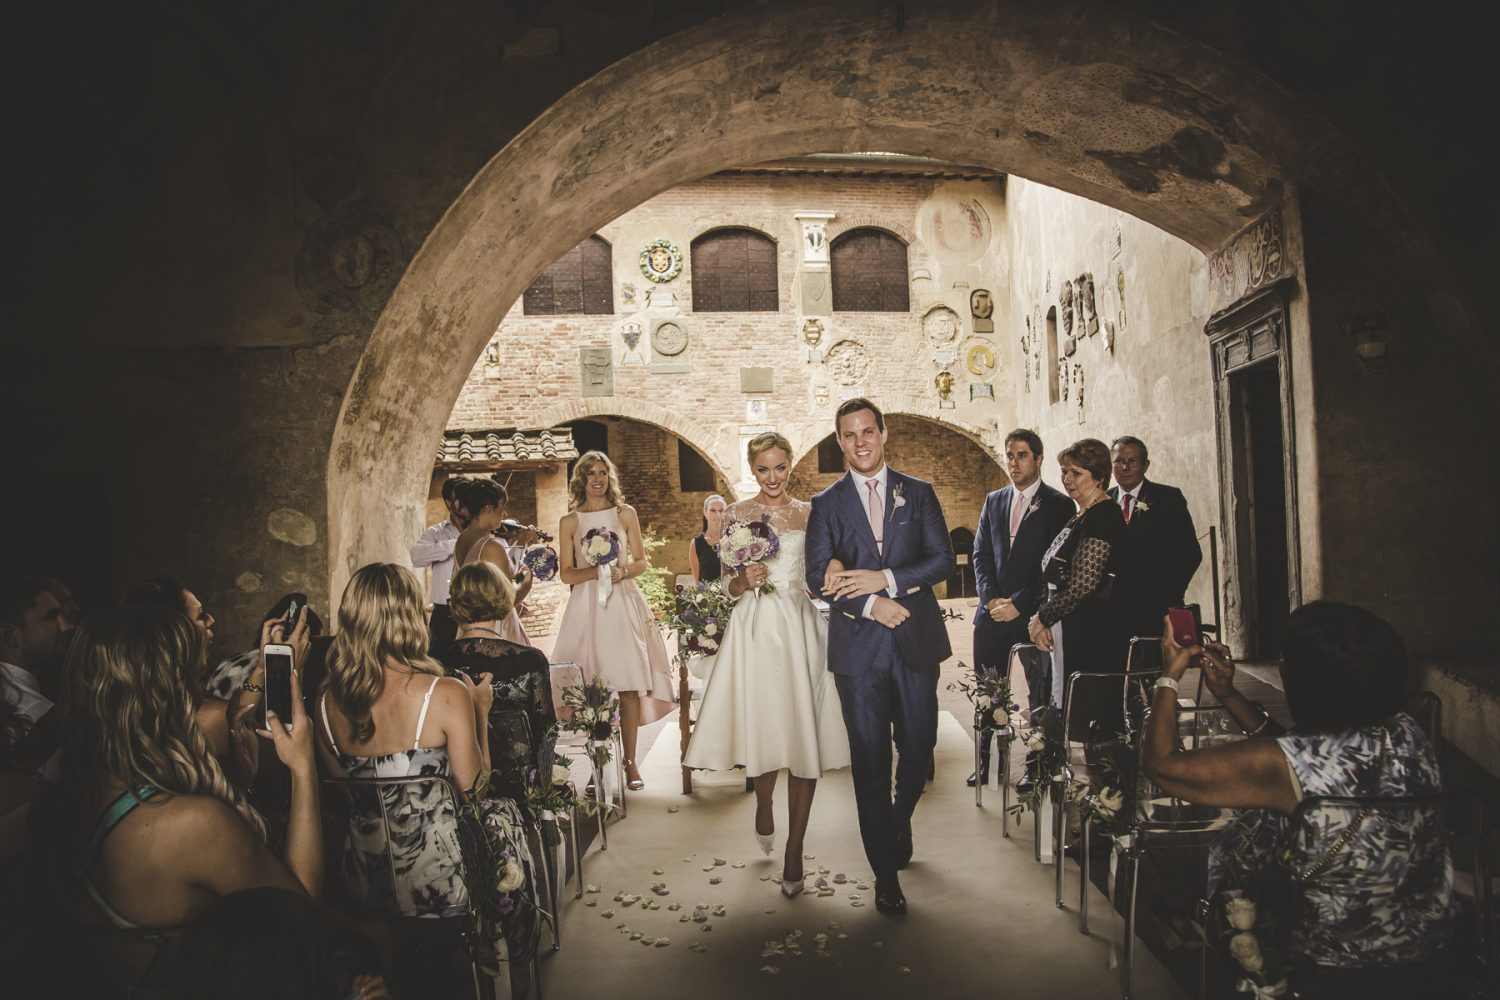 Ceremonies for weddings in Tuscany